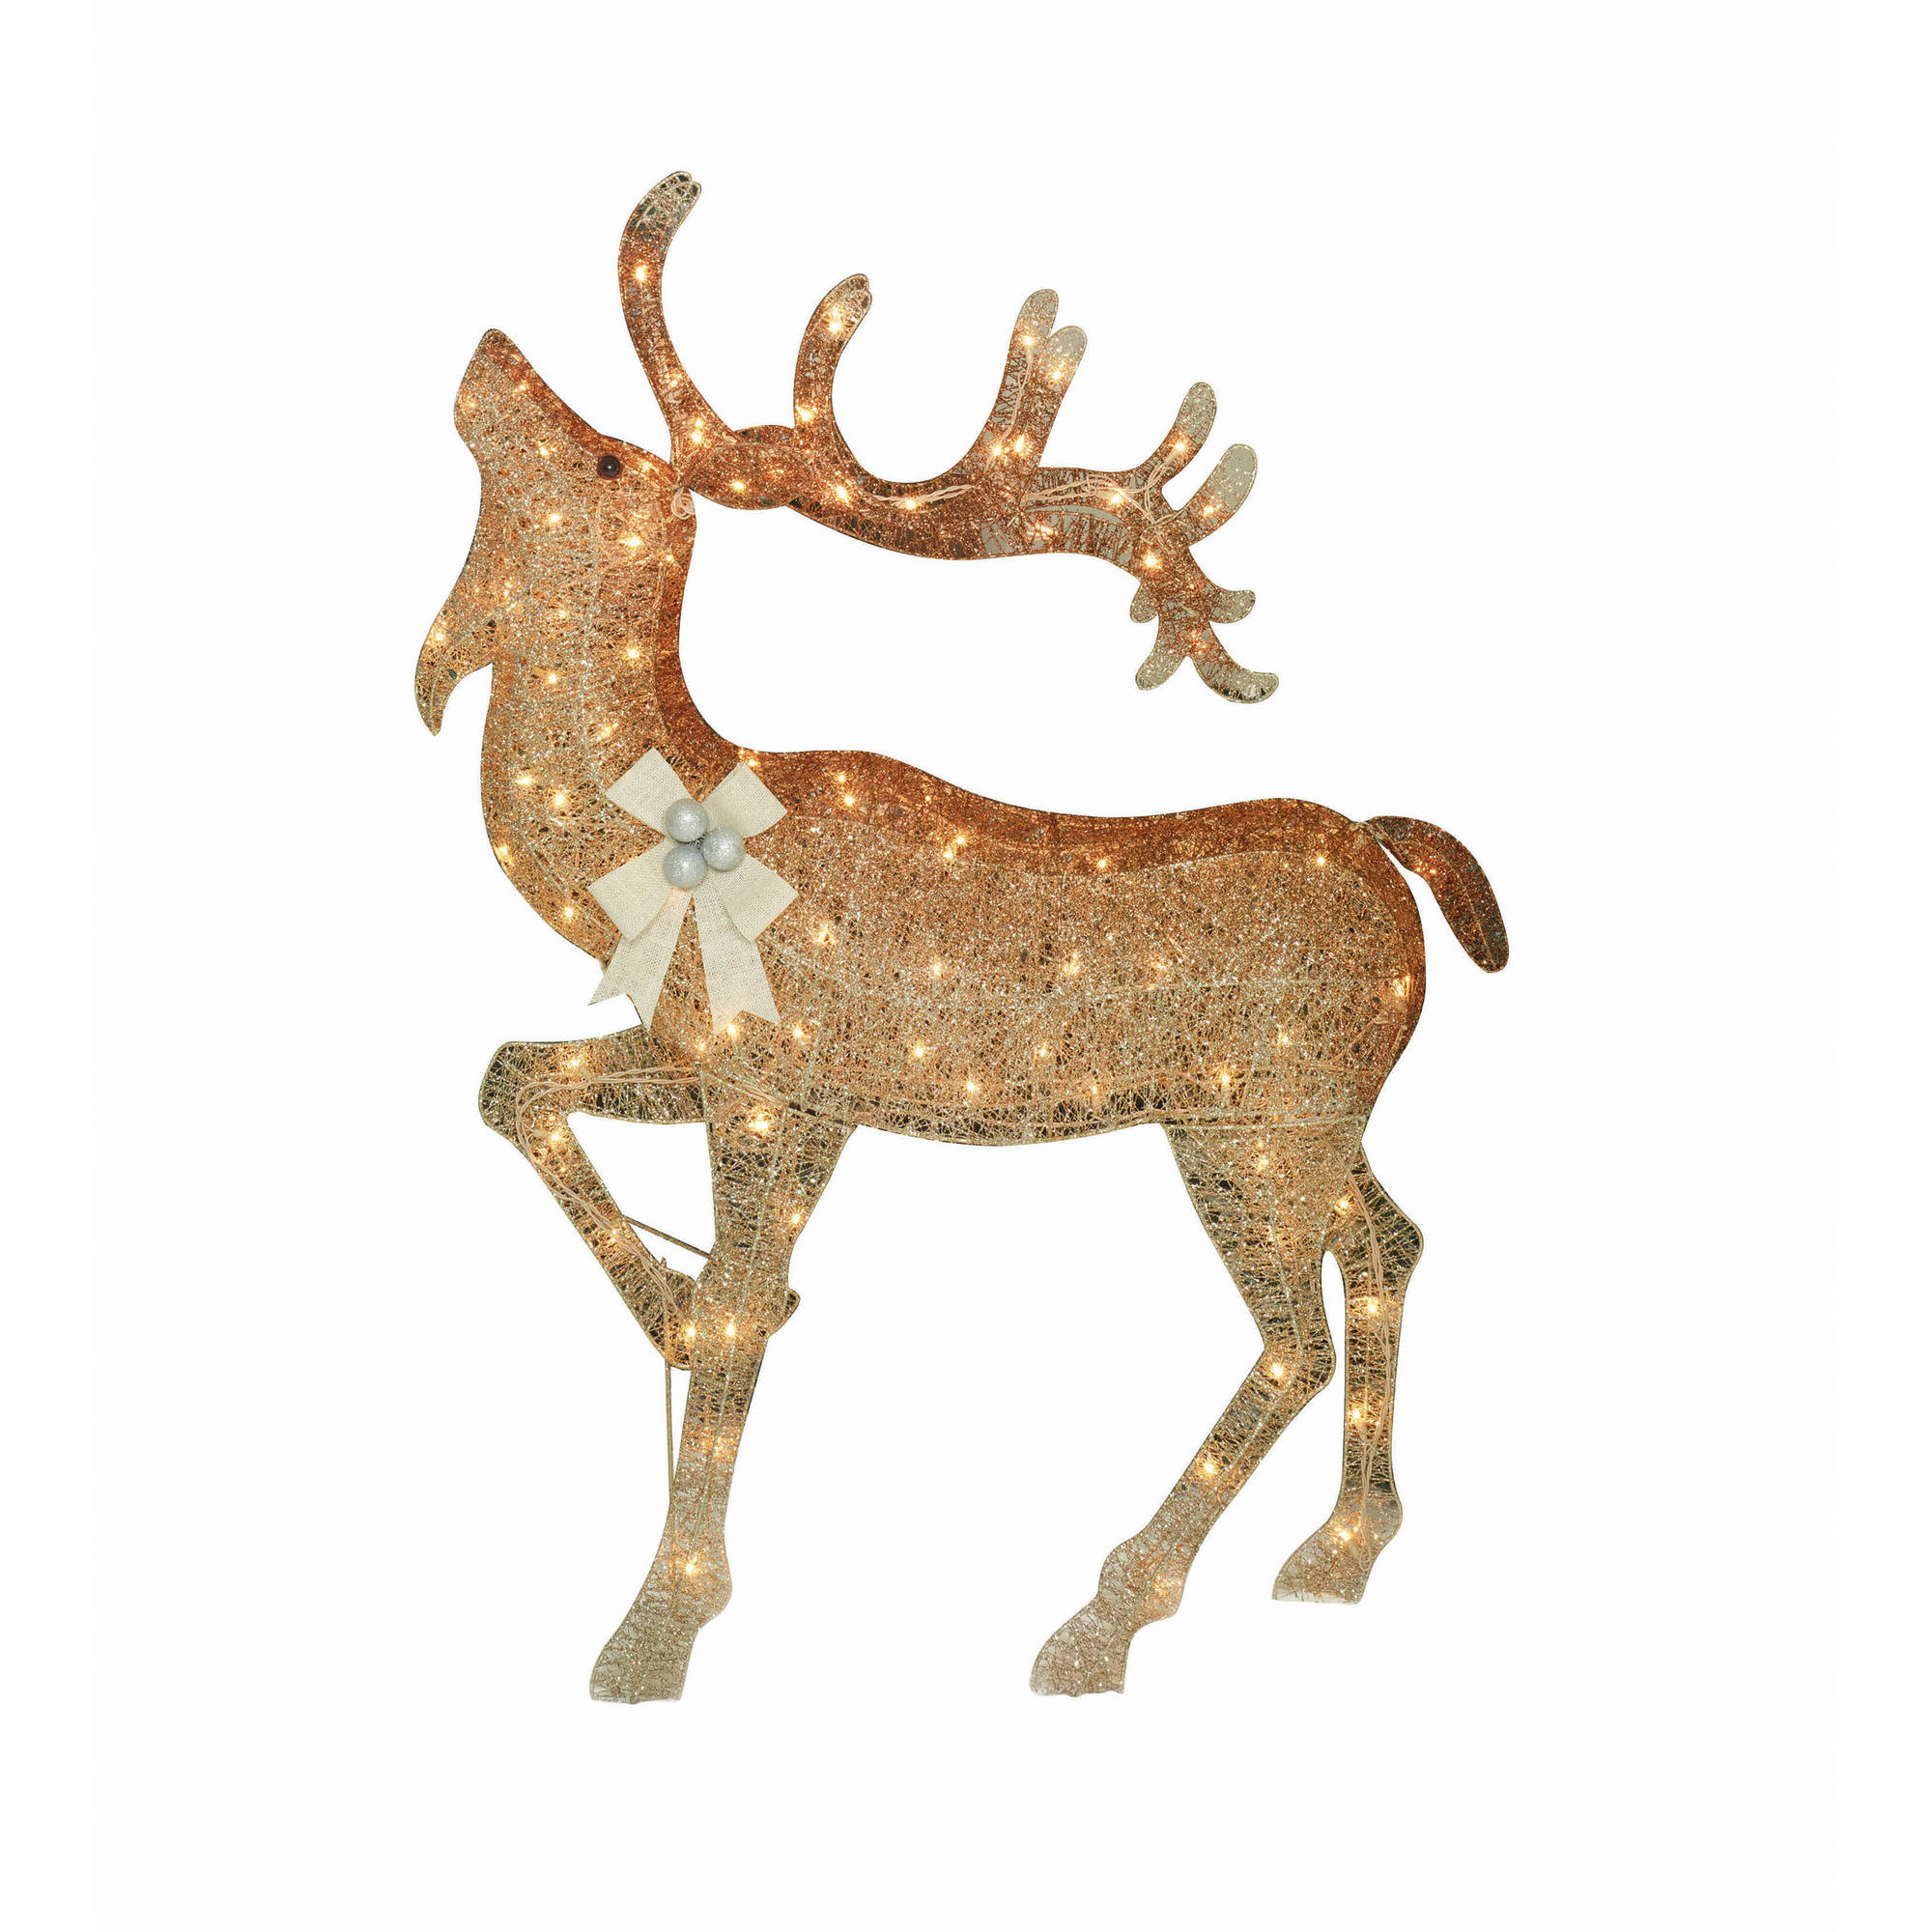 decor any creation pin shop outdoor addition a all about meaningful to would statues lion deer be the garden